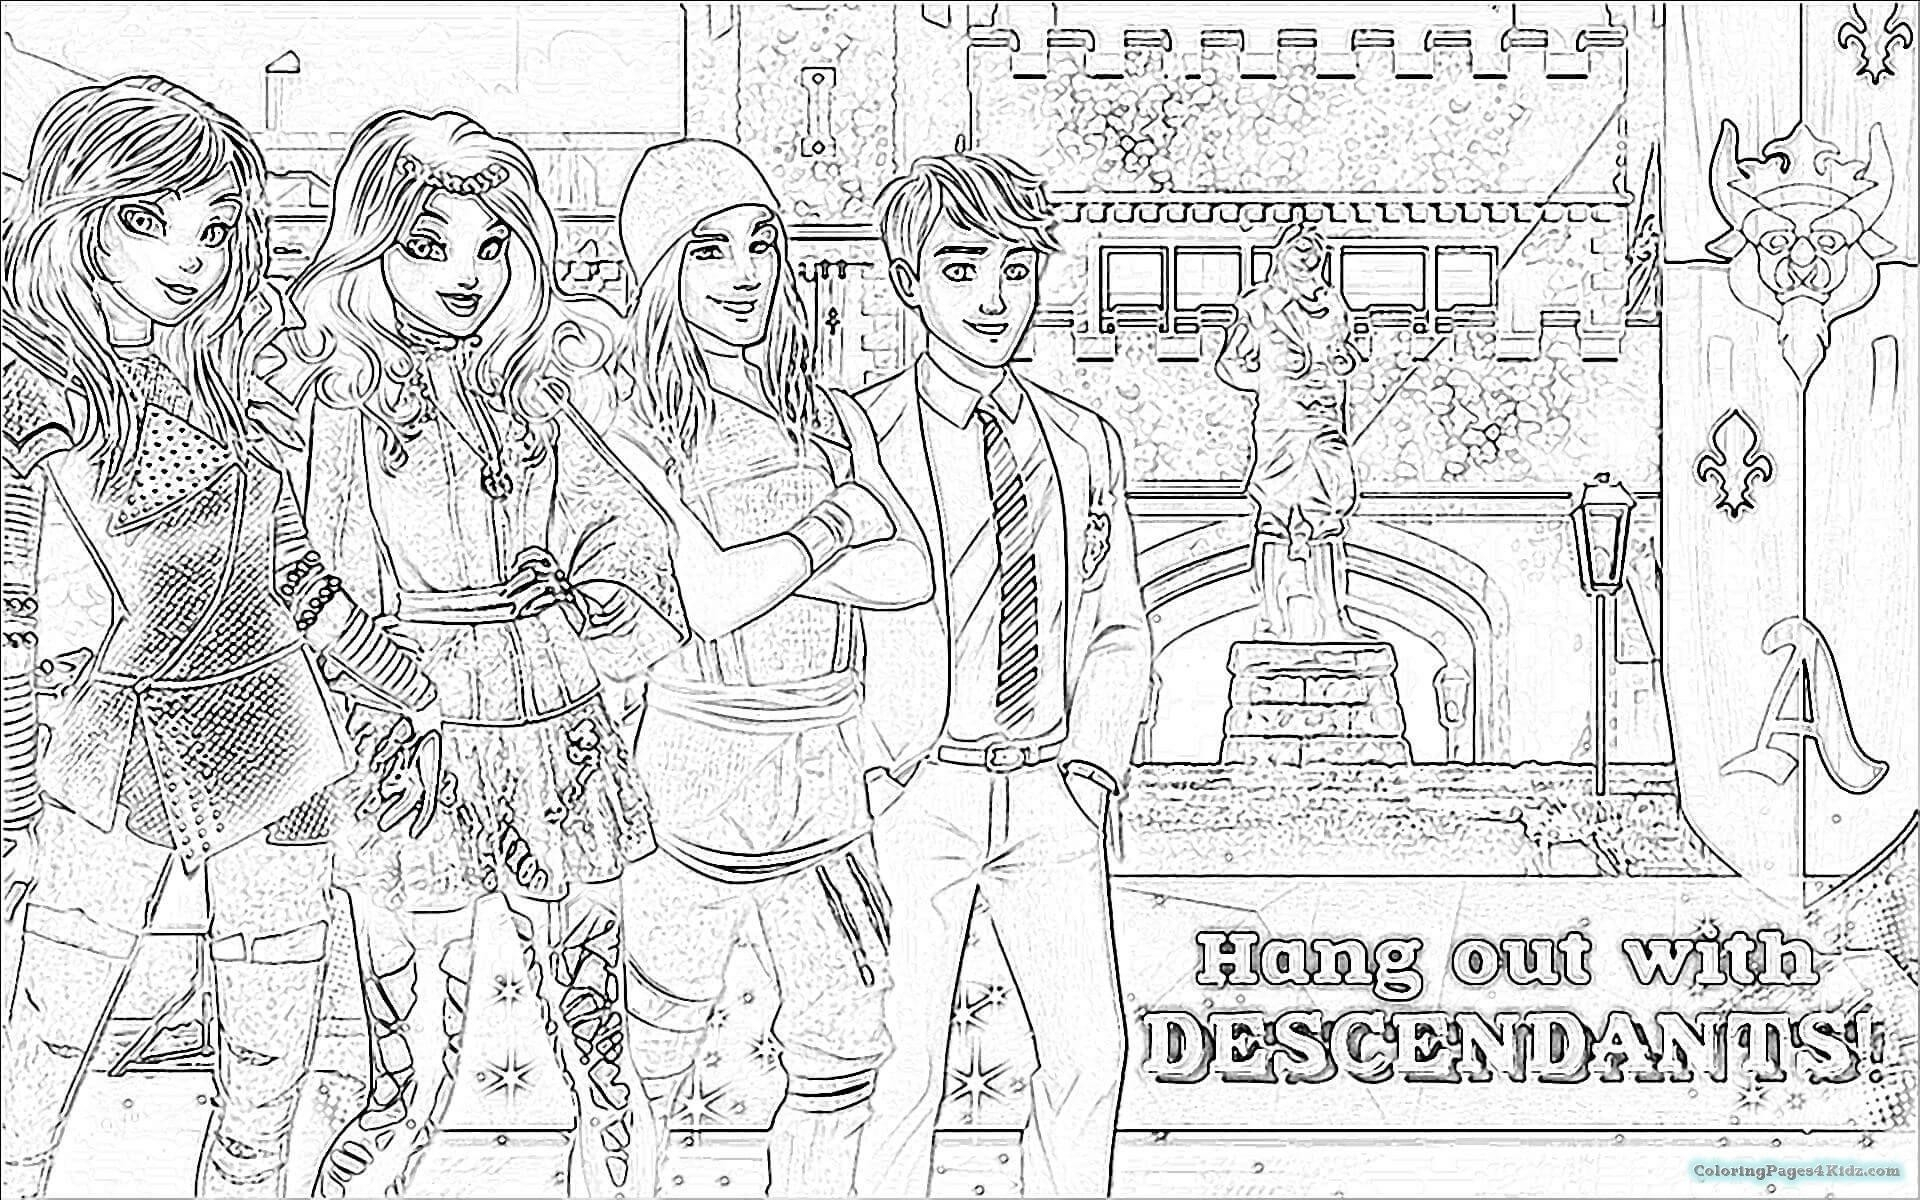 Descendants 2 Coloring Pages | Fun Time intended for Free Printables Of Descesdants 2